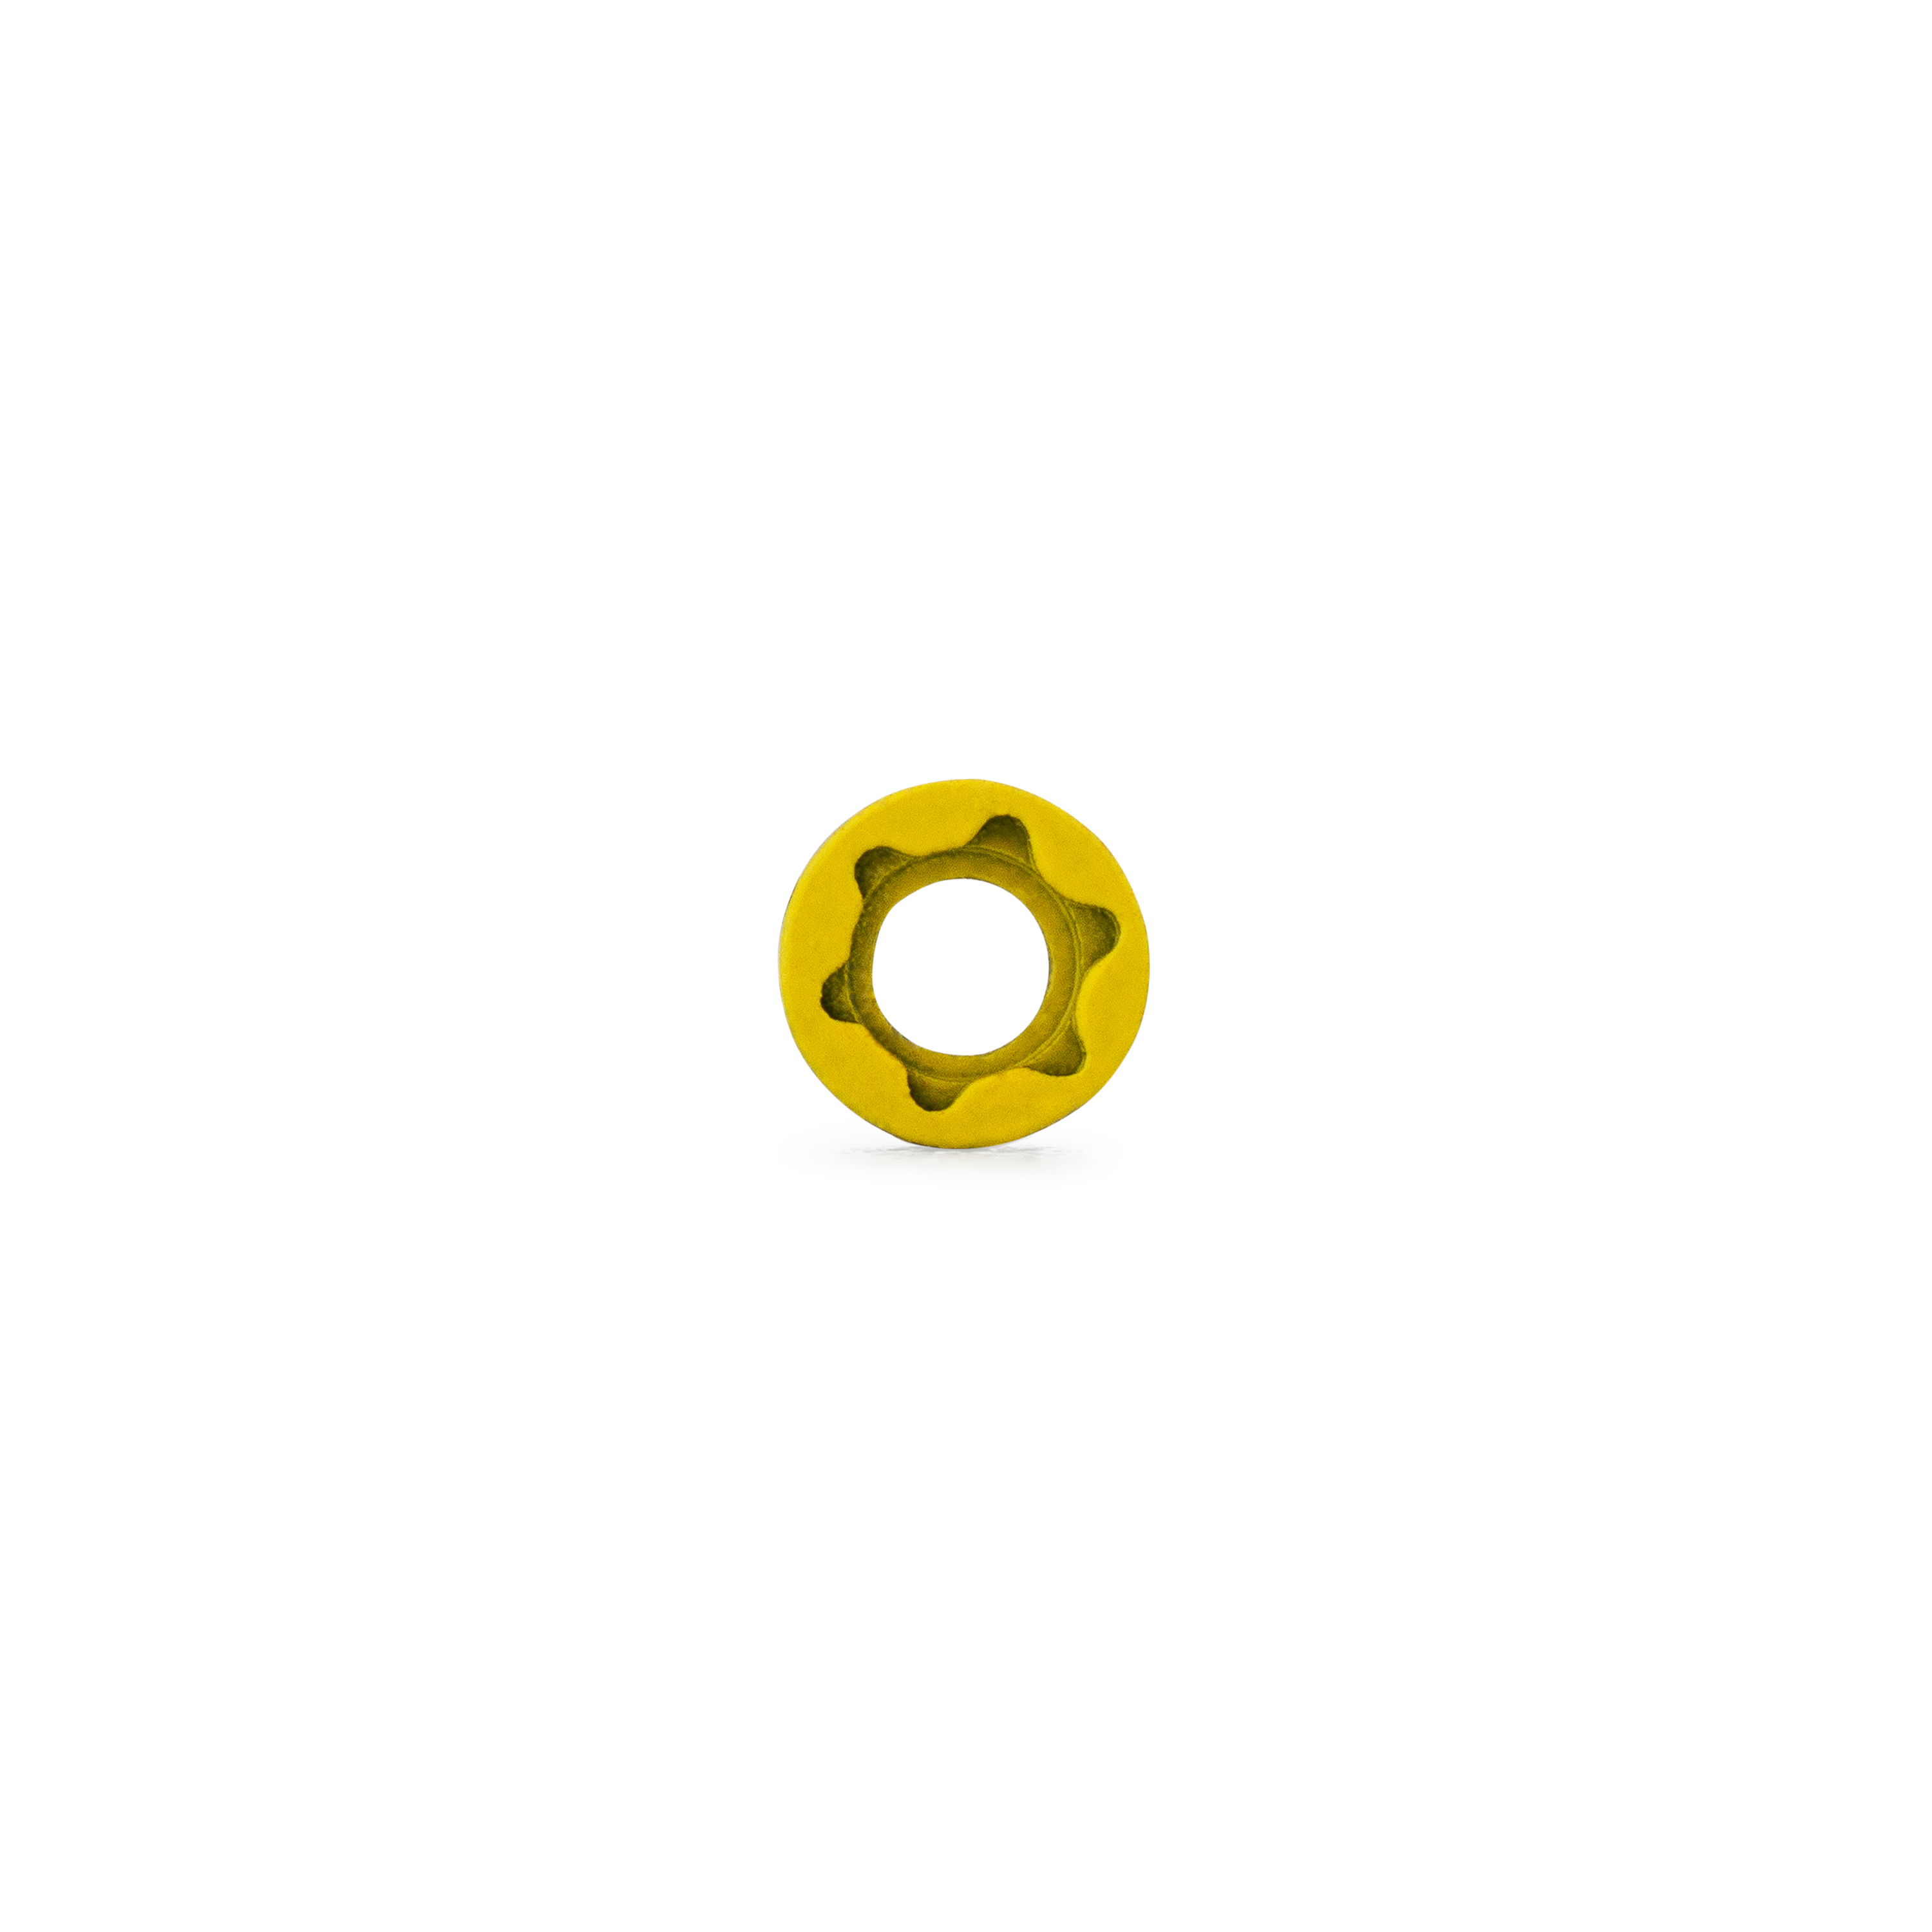 Trijicon DI™ Night Sight Retainer Replacement Pack - Yellow